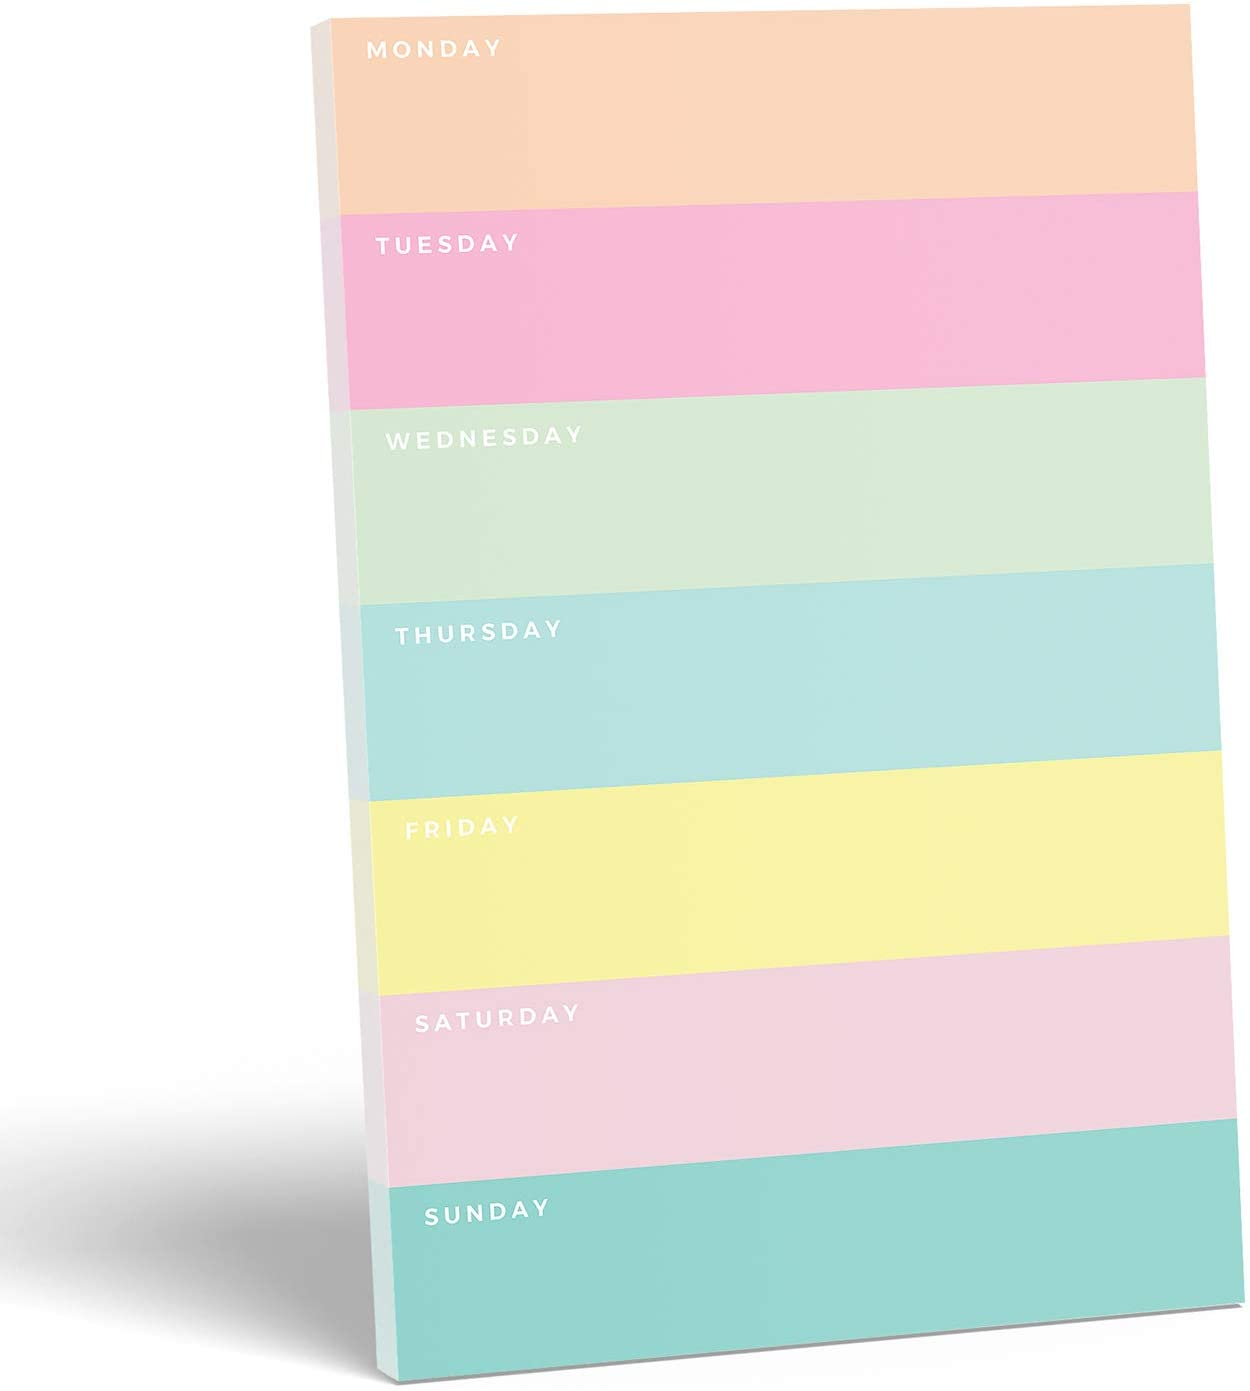 Daily Planner Max Bombing new work 46% OFF by Sweetzer Orange – 2021 - Undated